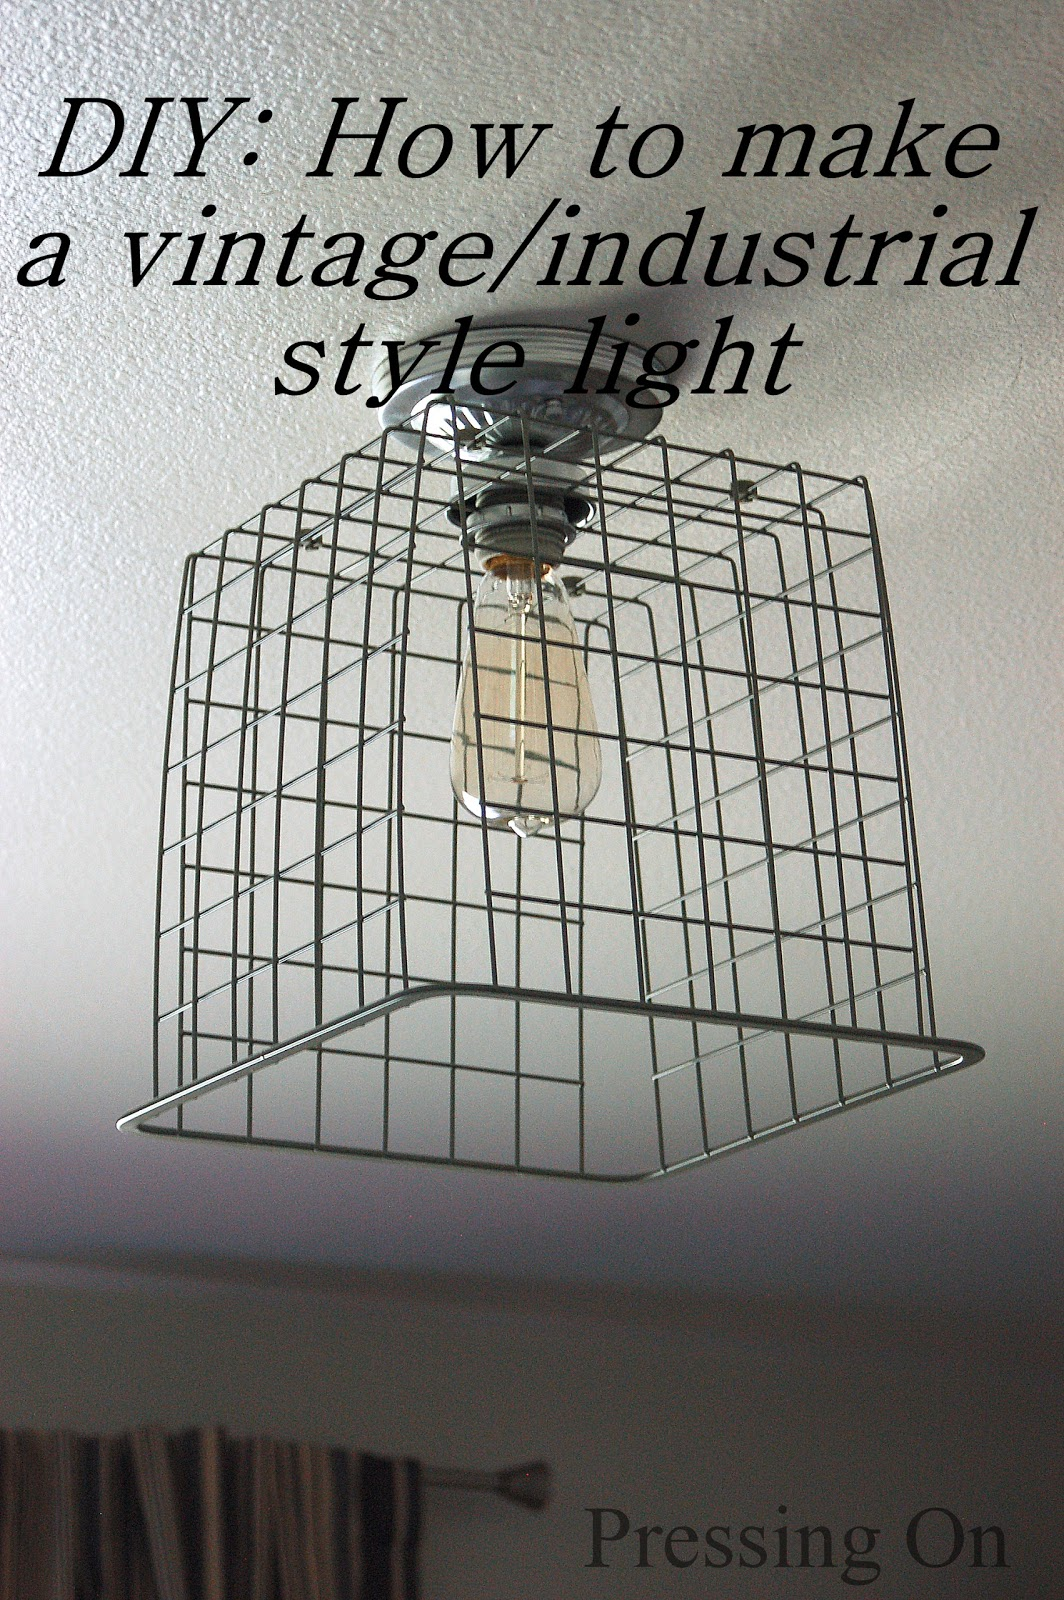 Pressing on diy vintage industrial style ceiling light - Diy ceiling light cover ...